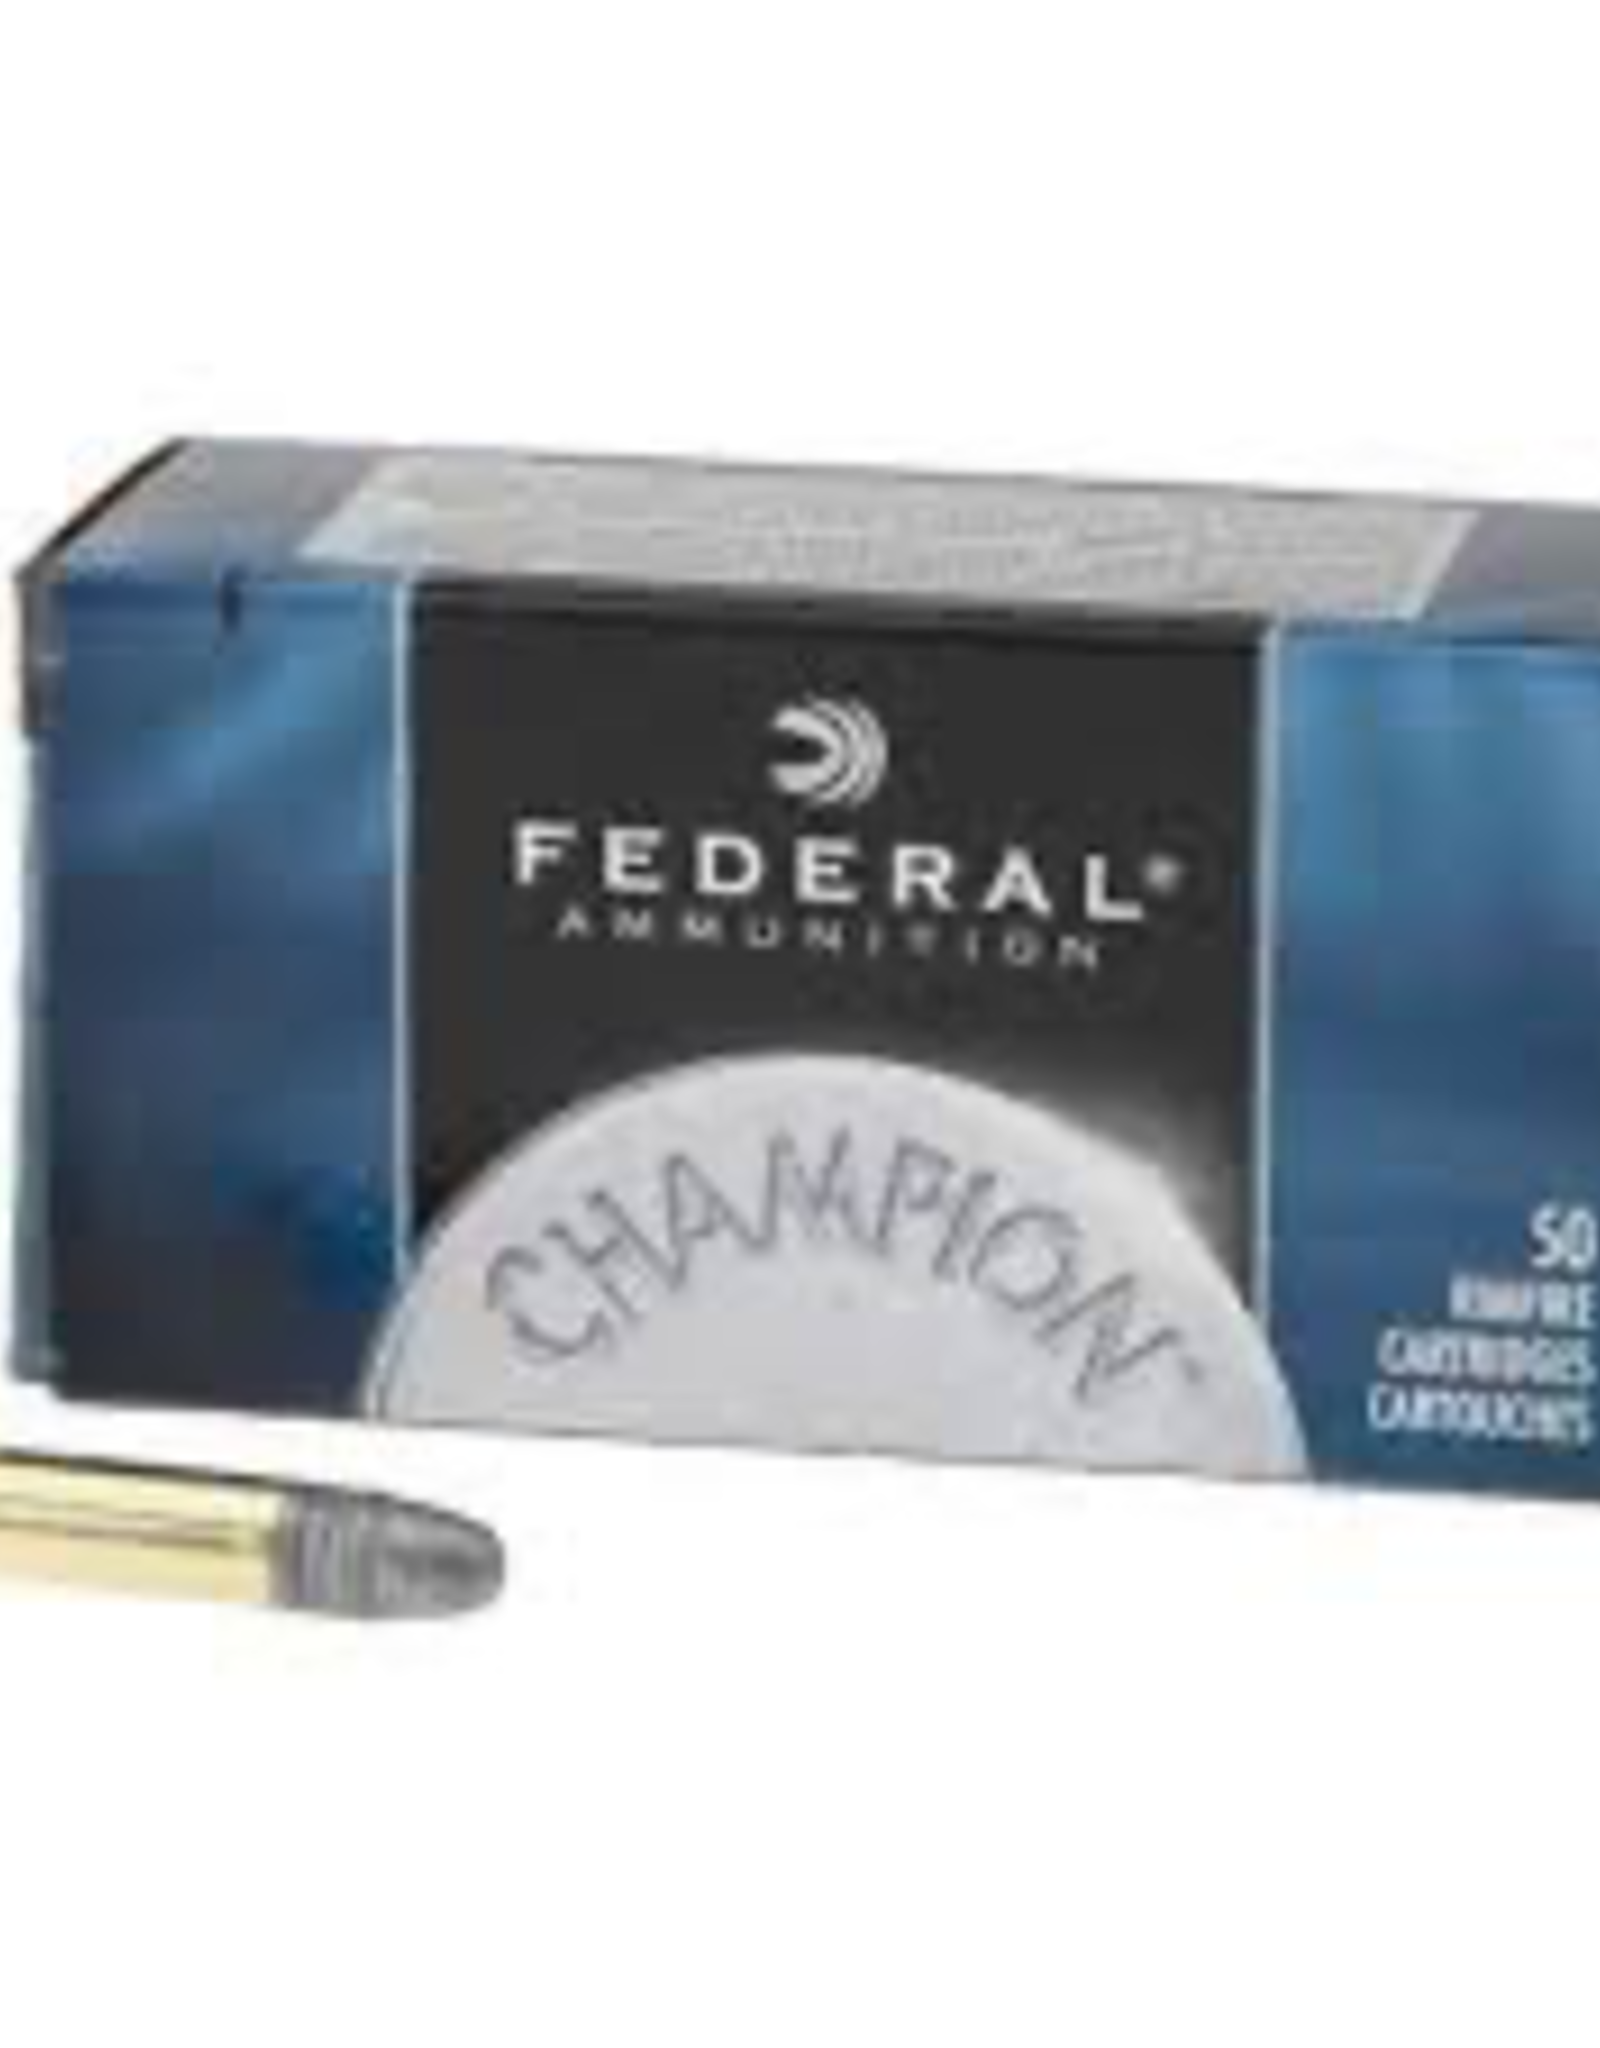 Federal 22 CAL LONG RIFLE 40 GR SOLID